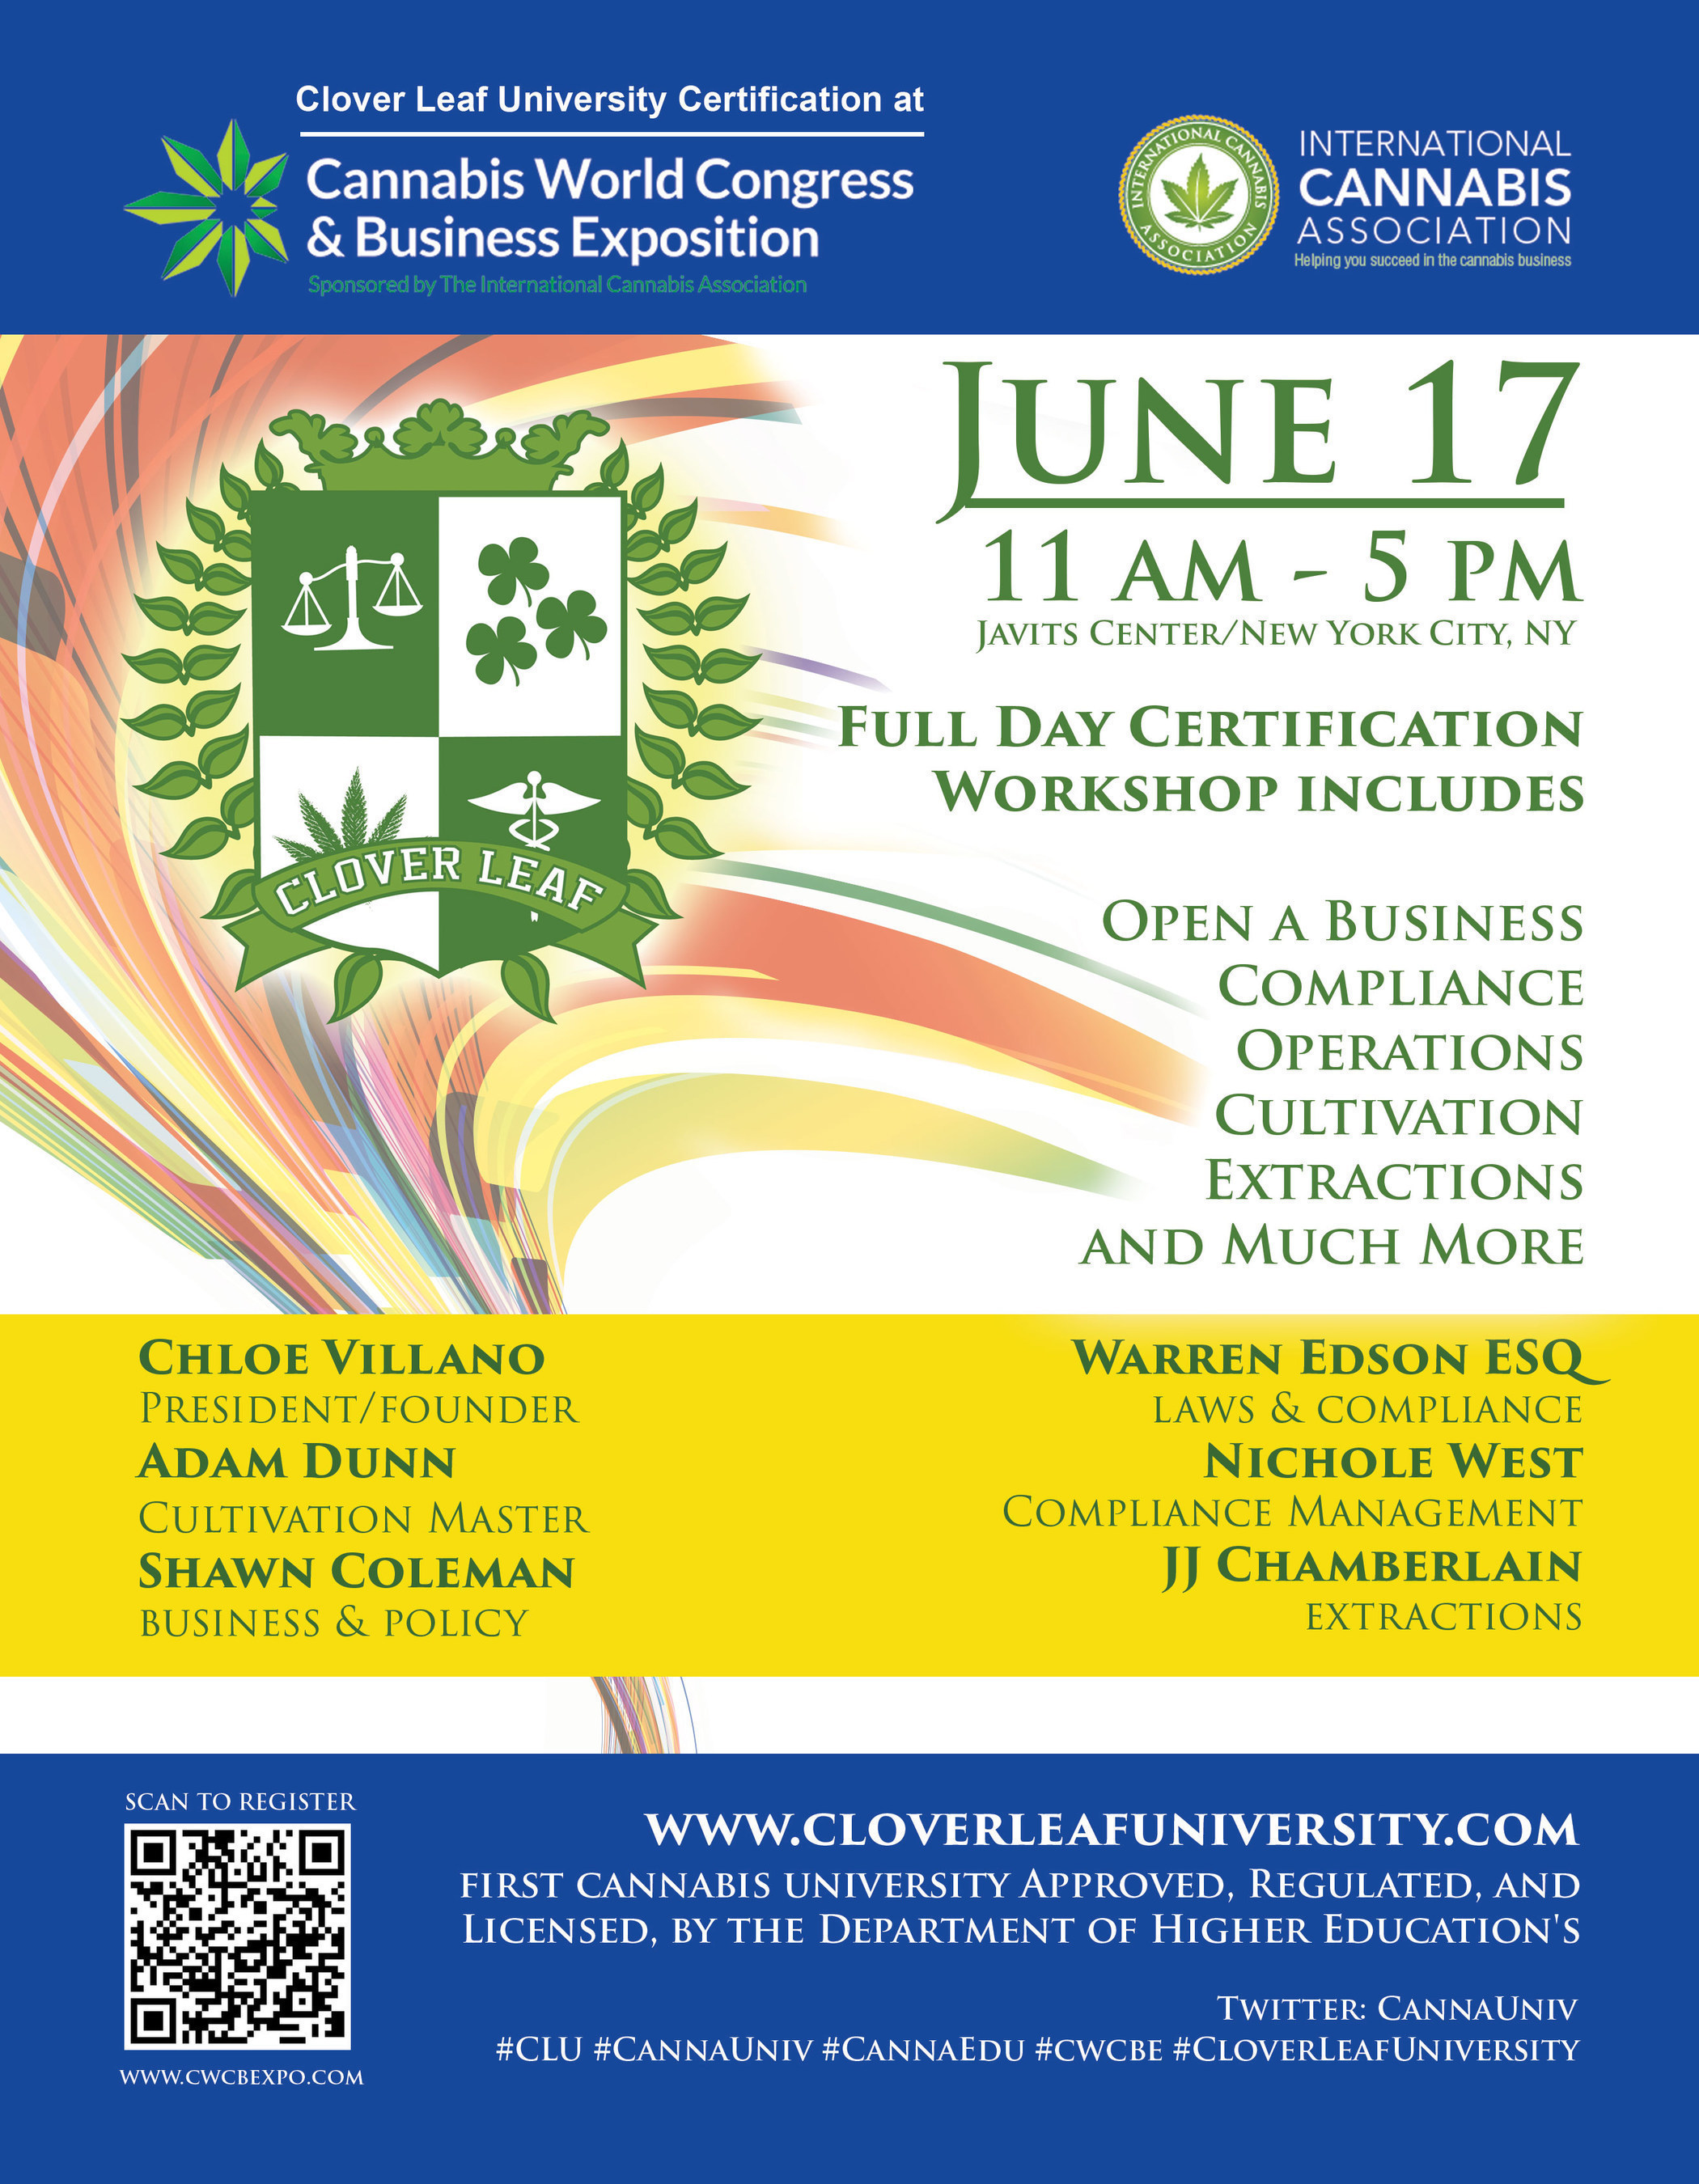 Cannabis Business Certification And Career Workshops Presented At